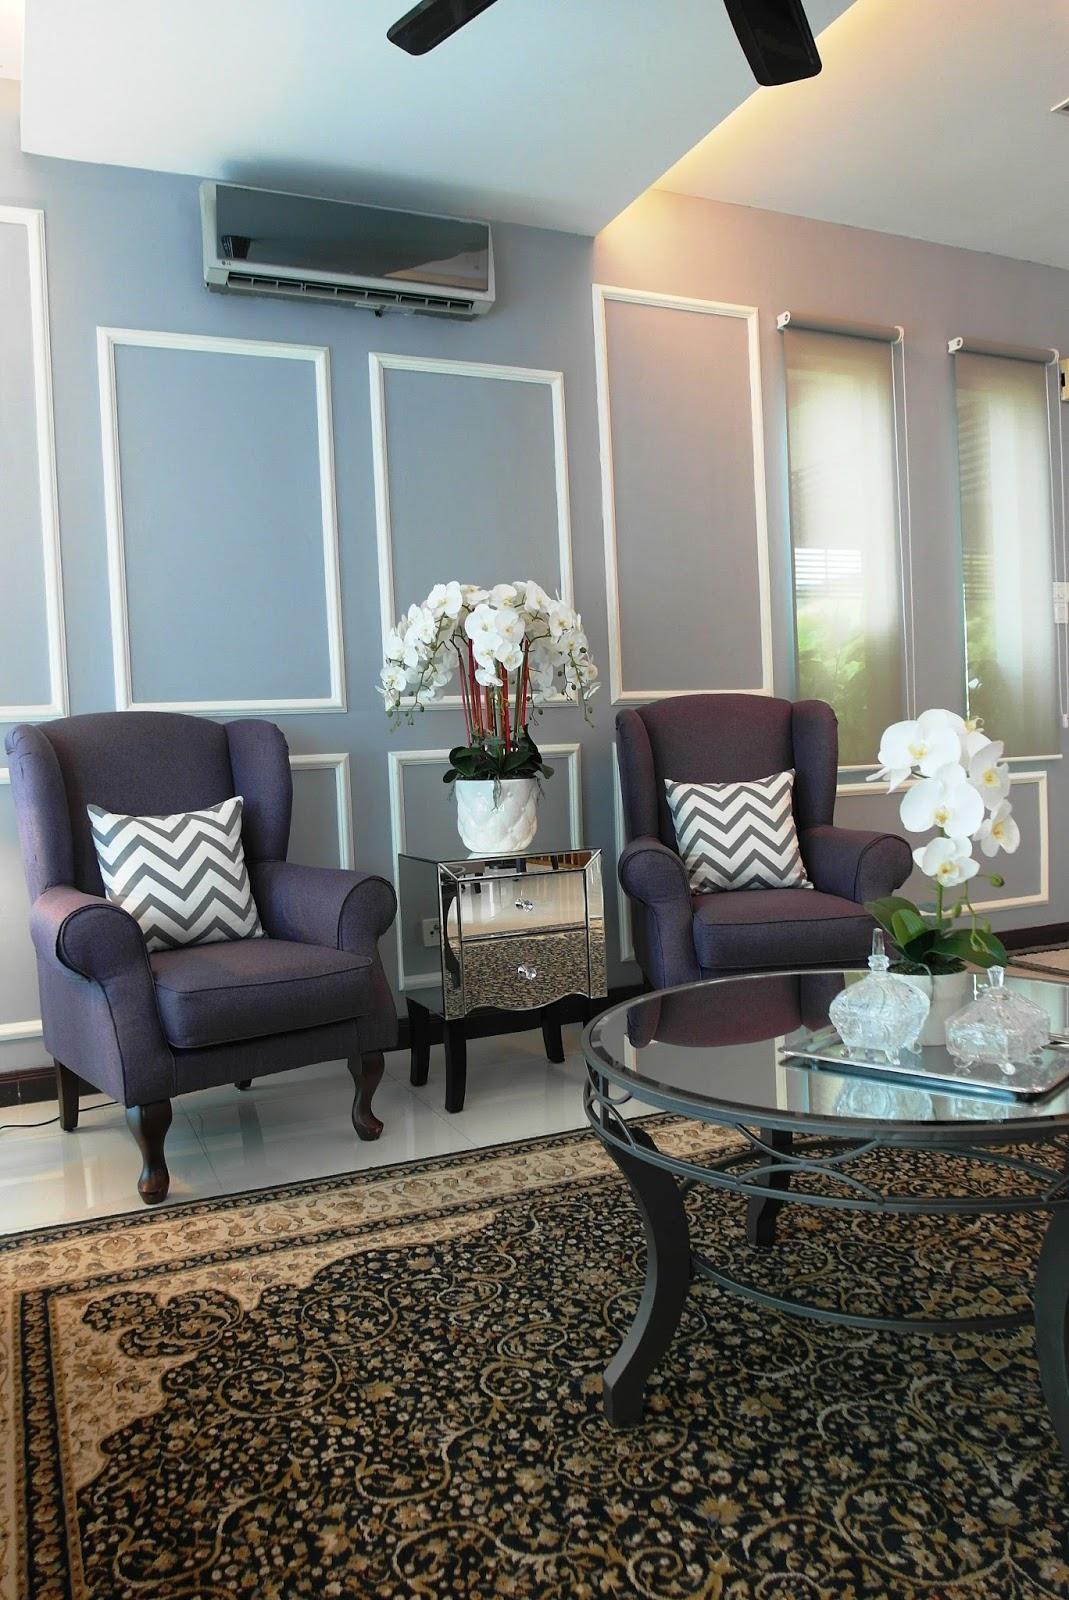 These Are Our Existing Arm Chairs Which Lentera Refurbished I Never Knew Purple Would Go So Well With Persian Carpet And That Mirrored Double Drawers